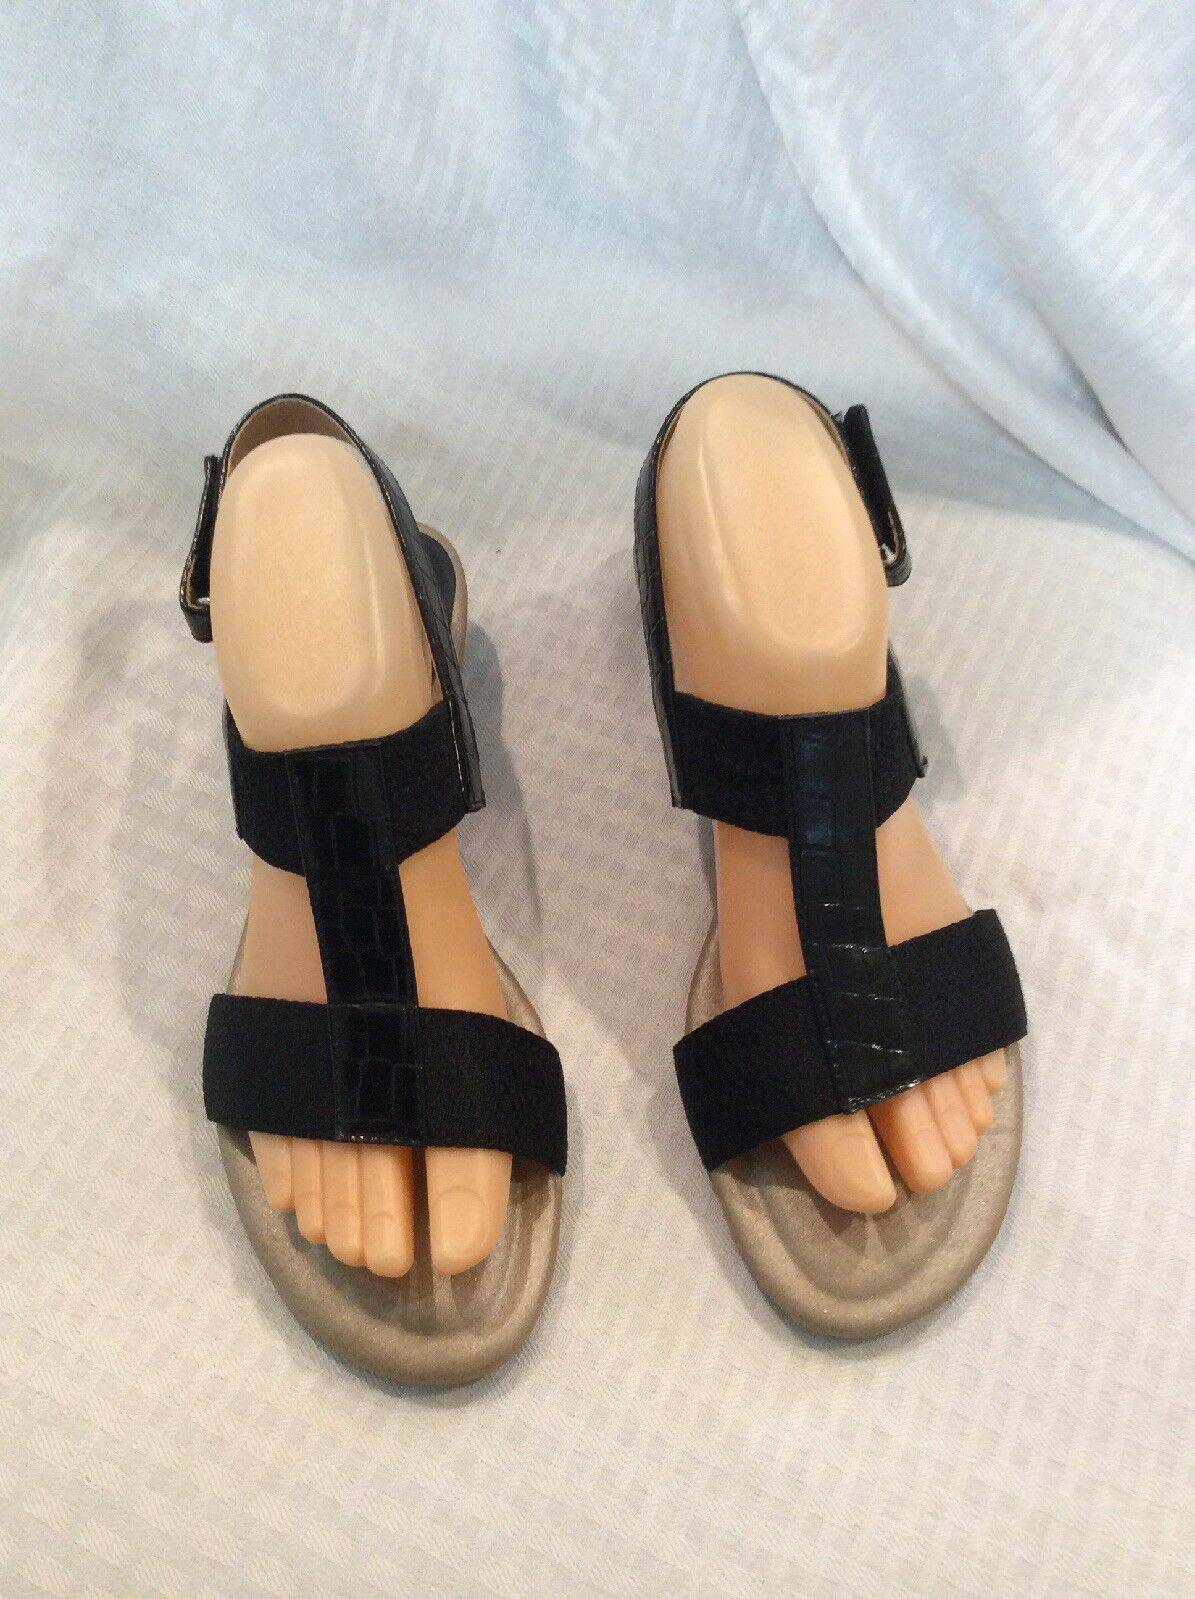 EUC Sandals Soft Style By Hush Puppies Co Womems Strappy Sandals EUC Size 9M Color Black e25ffd